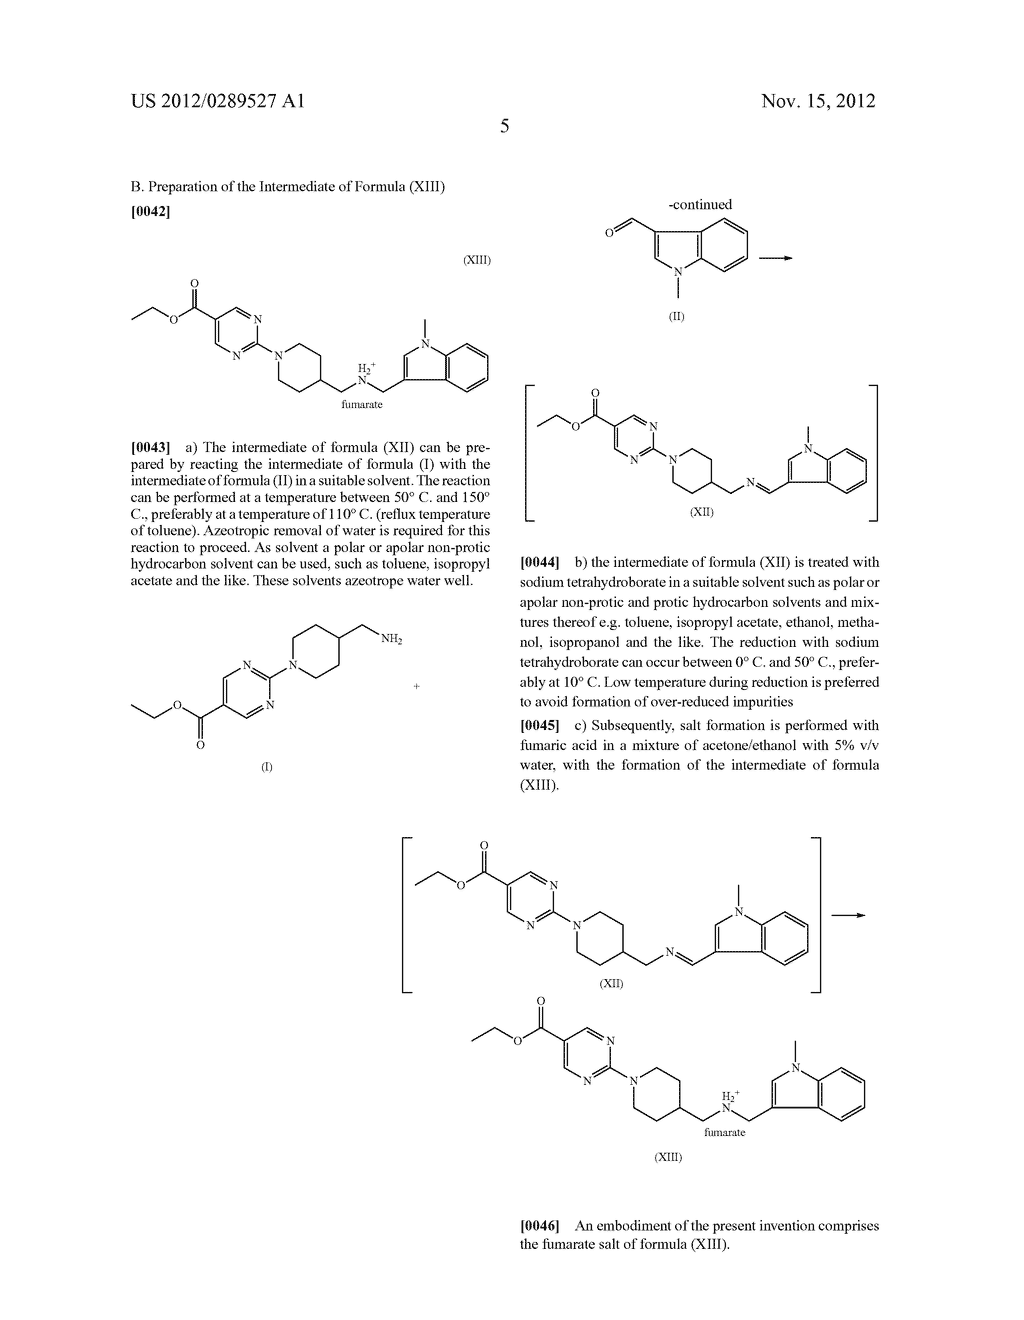 MONO-HYDROCHLORIC SALTS OF AN INHIBITOR OF HISTONE DEACETYLASE - diagram, schematic, and image 22